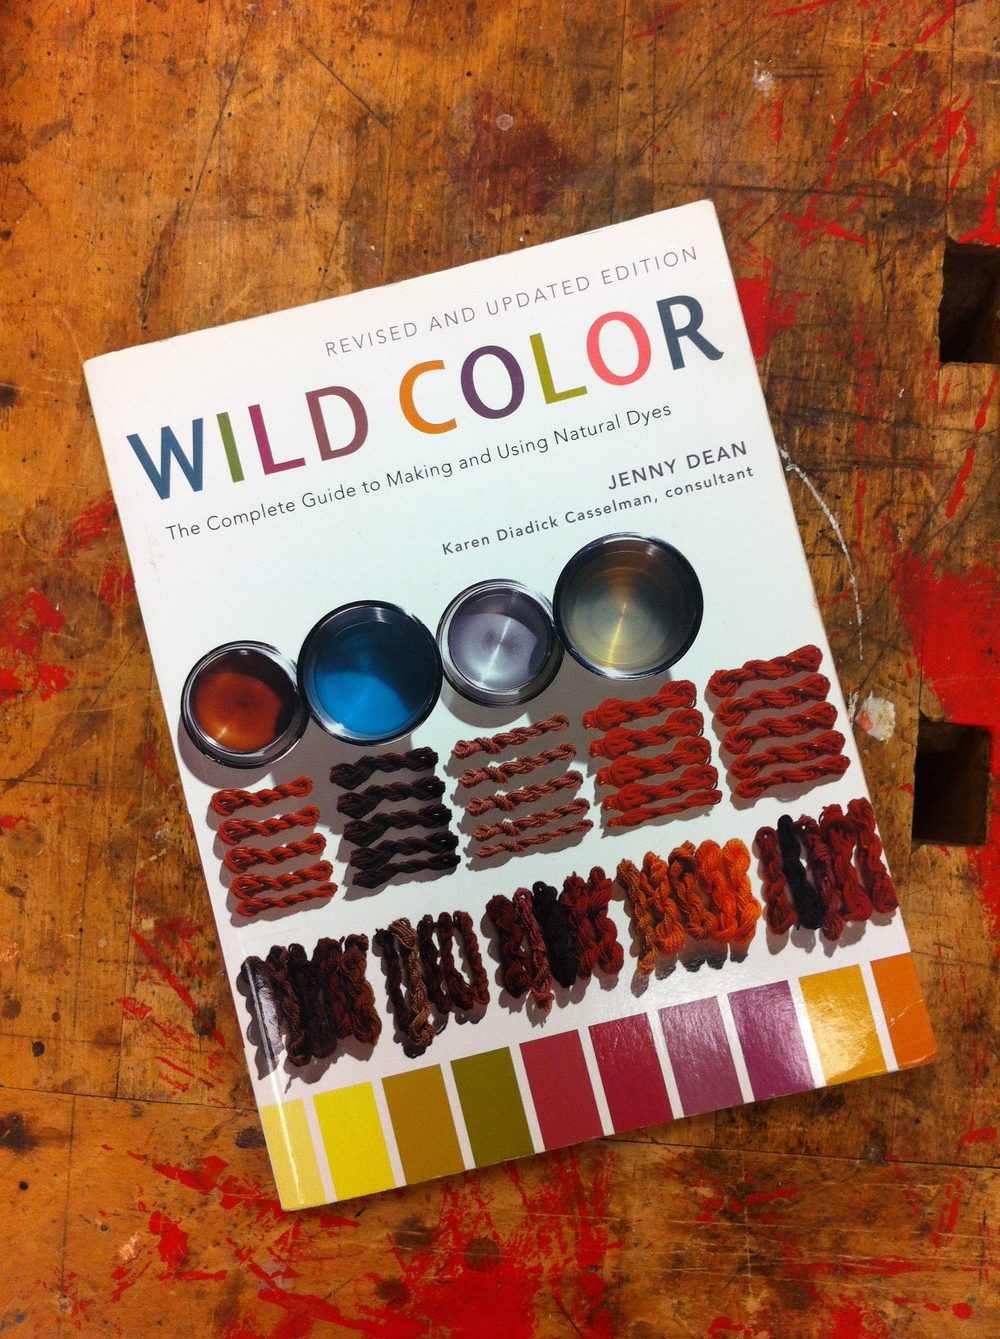 Wild Color is a great resource to use for anyone looking to learn more about natural dyes